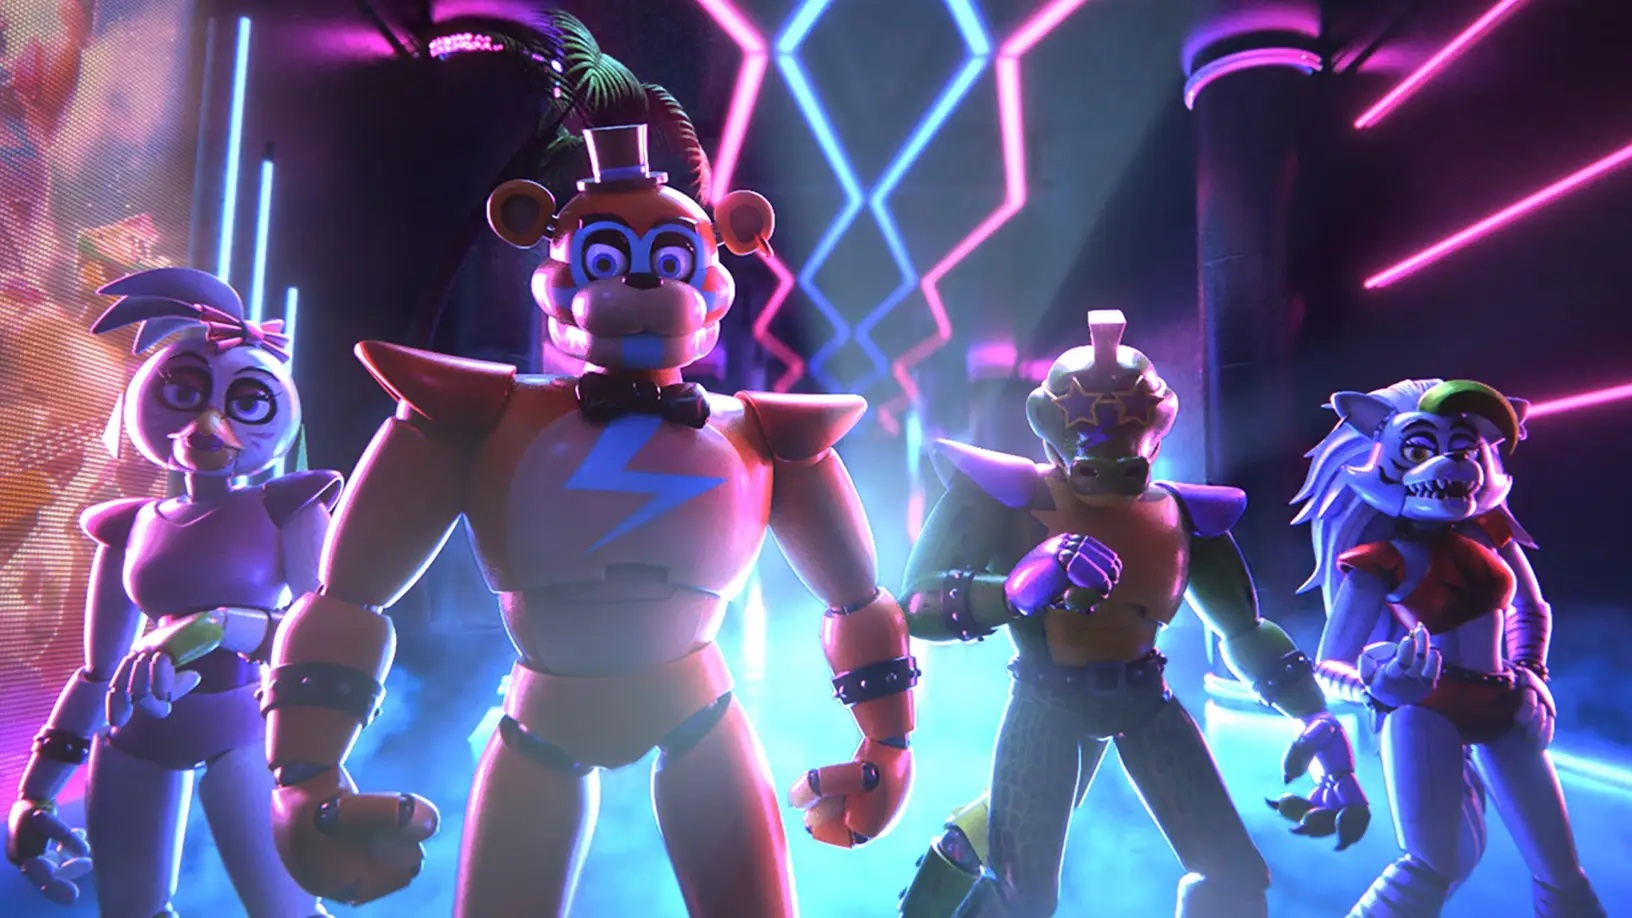 four creepy animatronic robots standing in front of neon lights